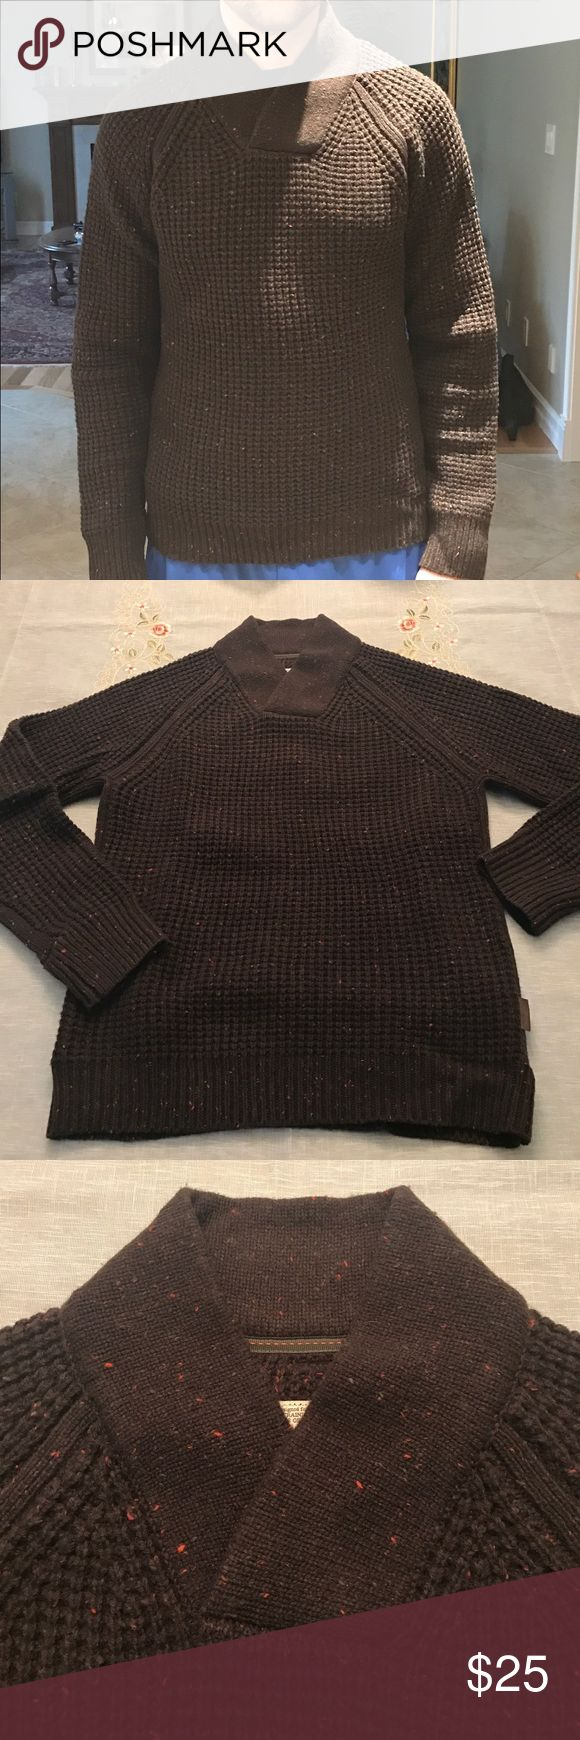 🆕 Cockpit USA men's wool sweater Never been worn cockpit USA Sweaters